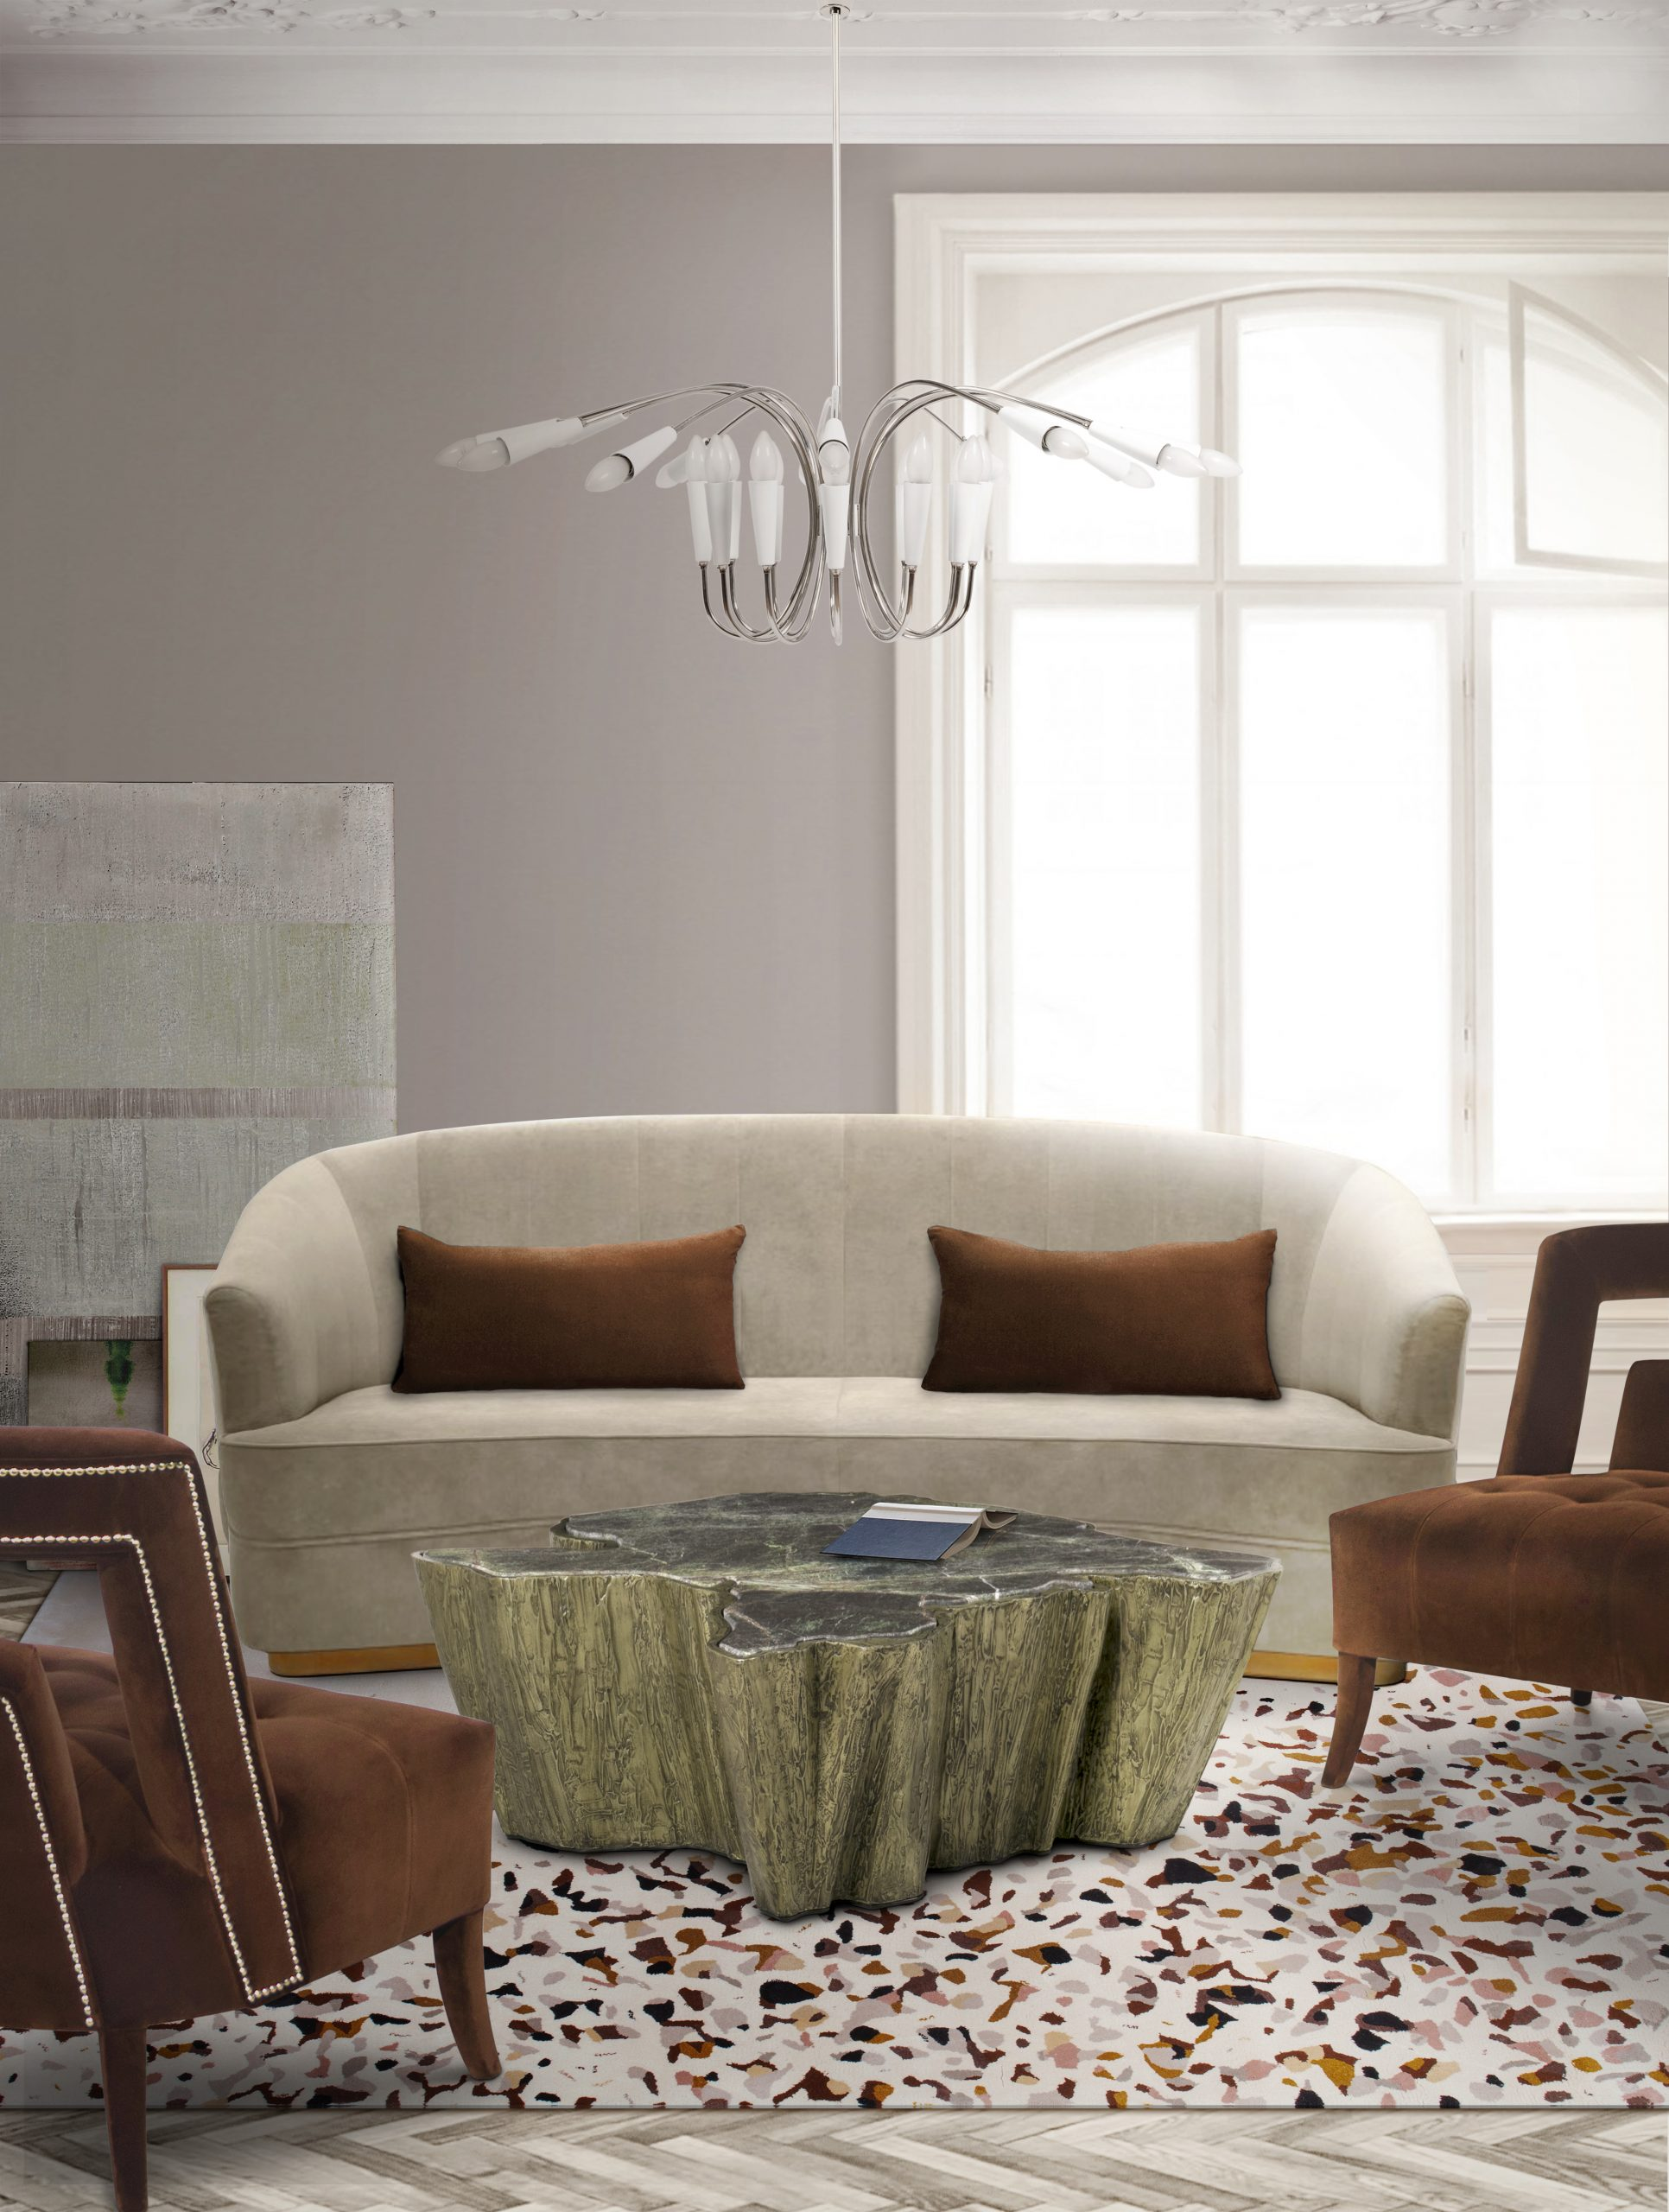 We'll Finally State the Difference Between Contemporary and Modern Interior Designs! contemporary and modern We'll Finally State the Difference Between Contemporary and Modern Interior Designs! 2 1 scaled